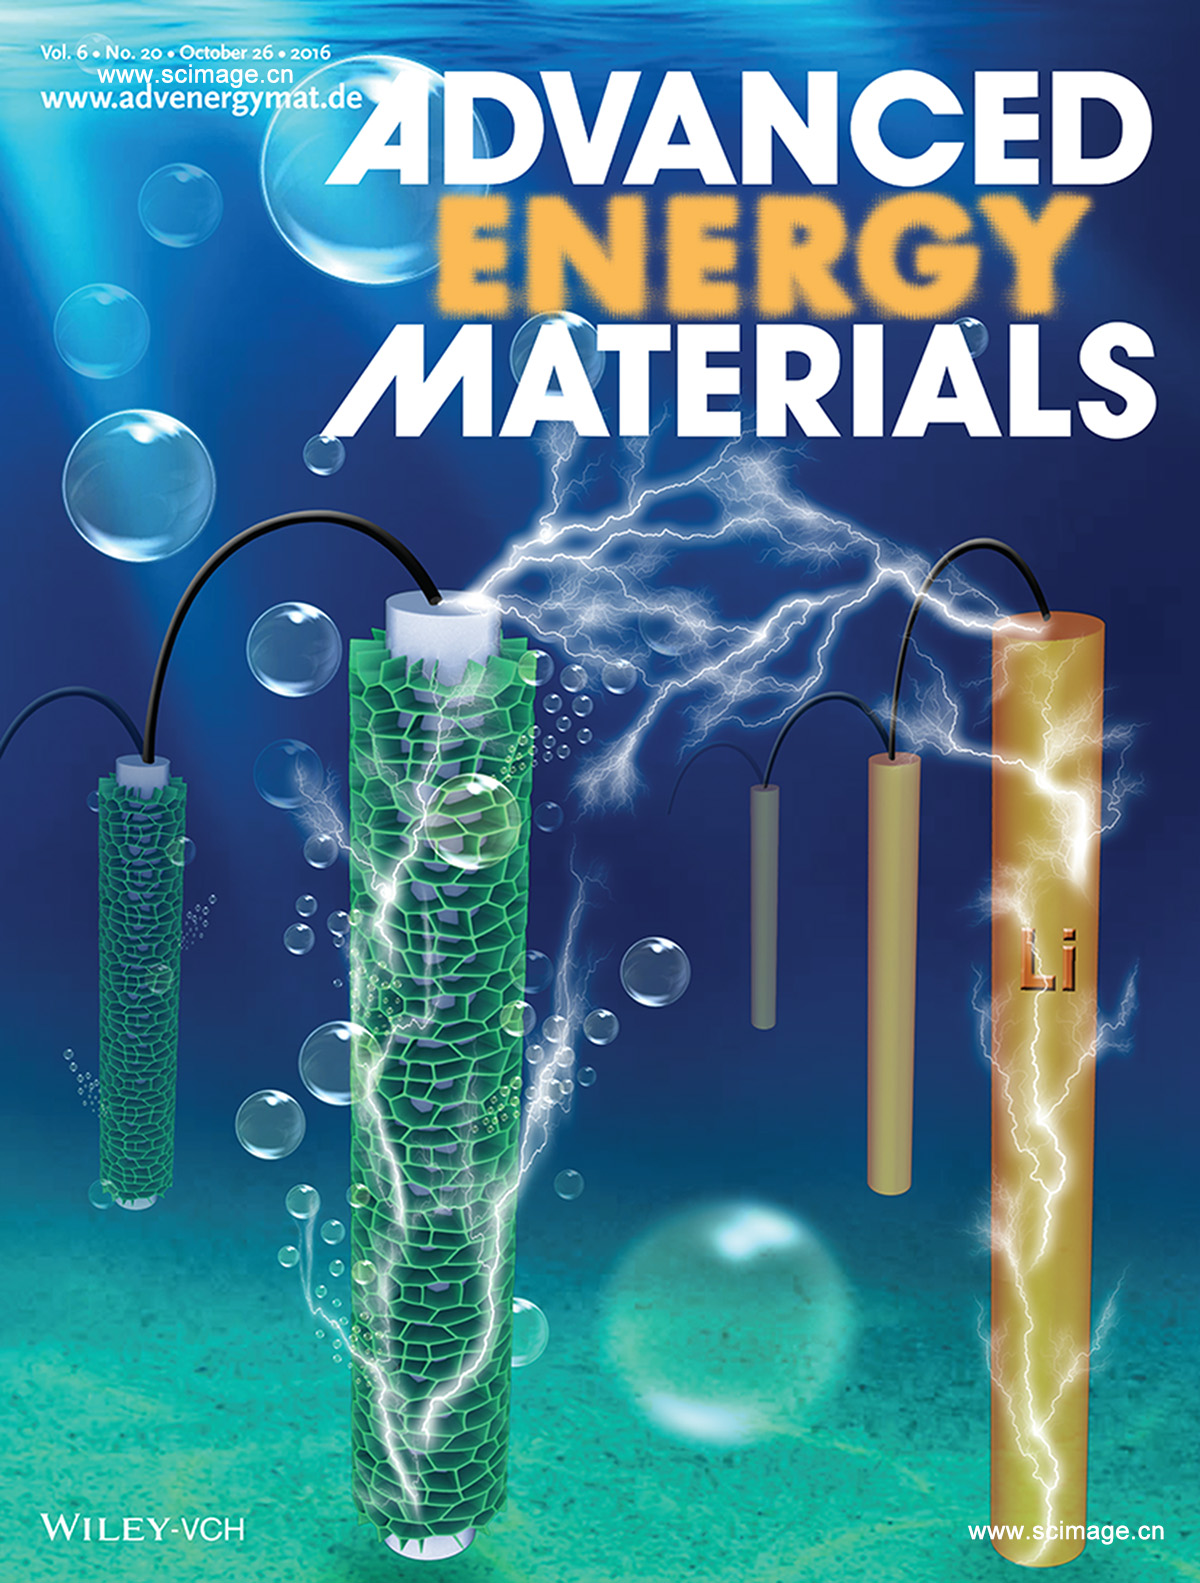 Zn-Air Batteries: Egg-Derived Mesoporous Carbon Microspheres as Bifunctional Oxygen Evolution and Oxygen Reduction Electrocatalysts (Adv. Energy Mater. 20/2016)